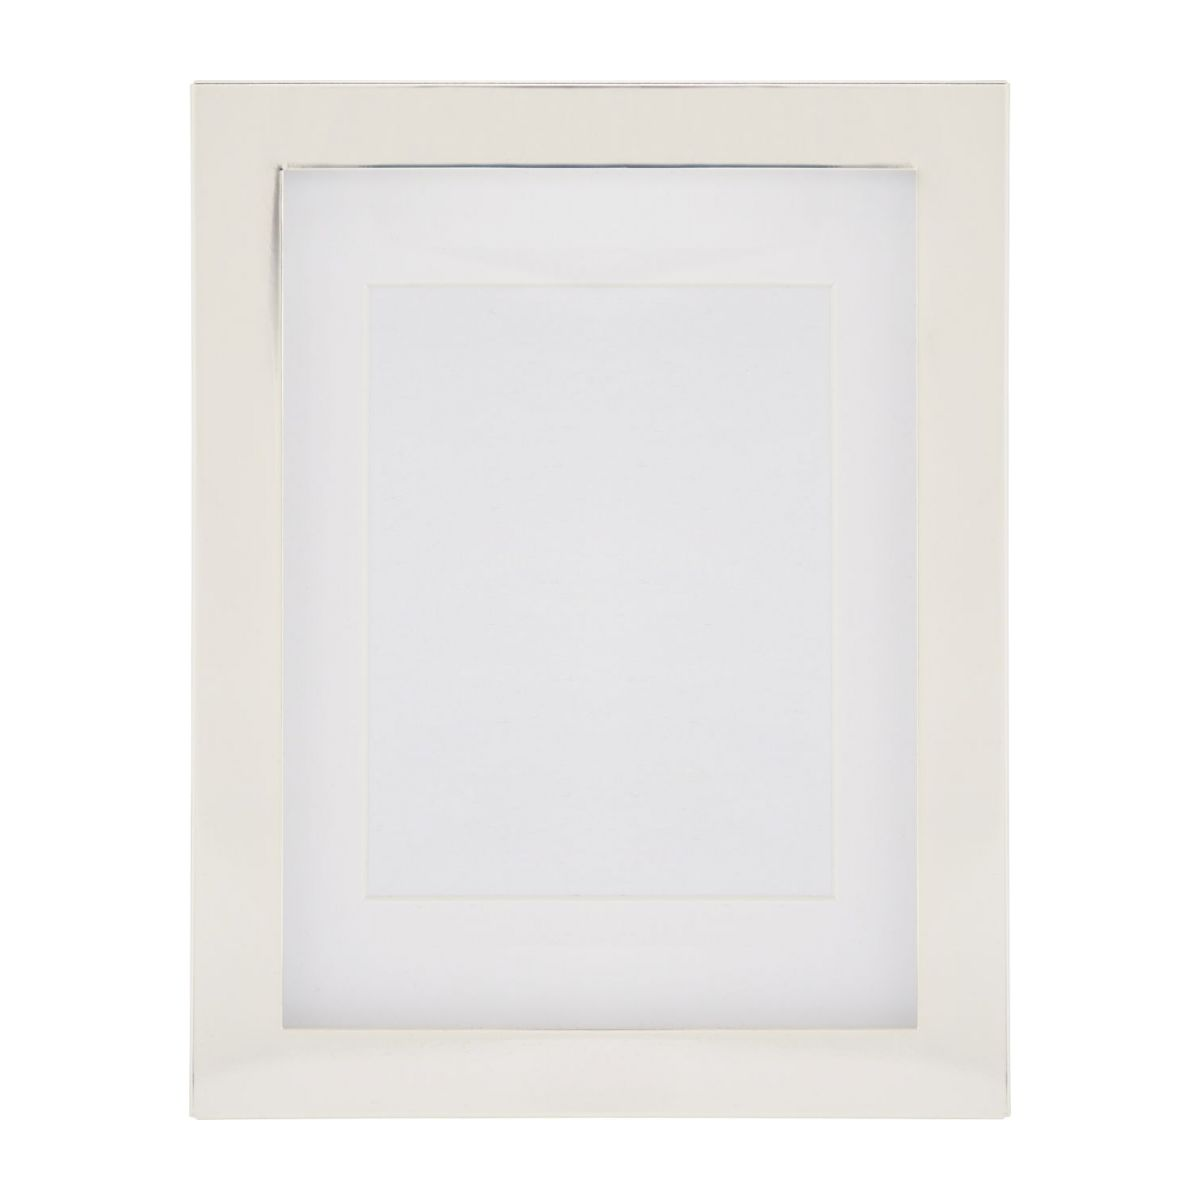 9 X 13 Picture Frame